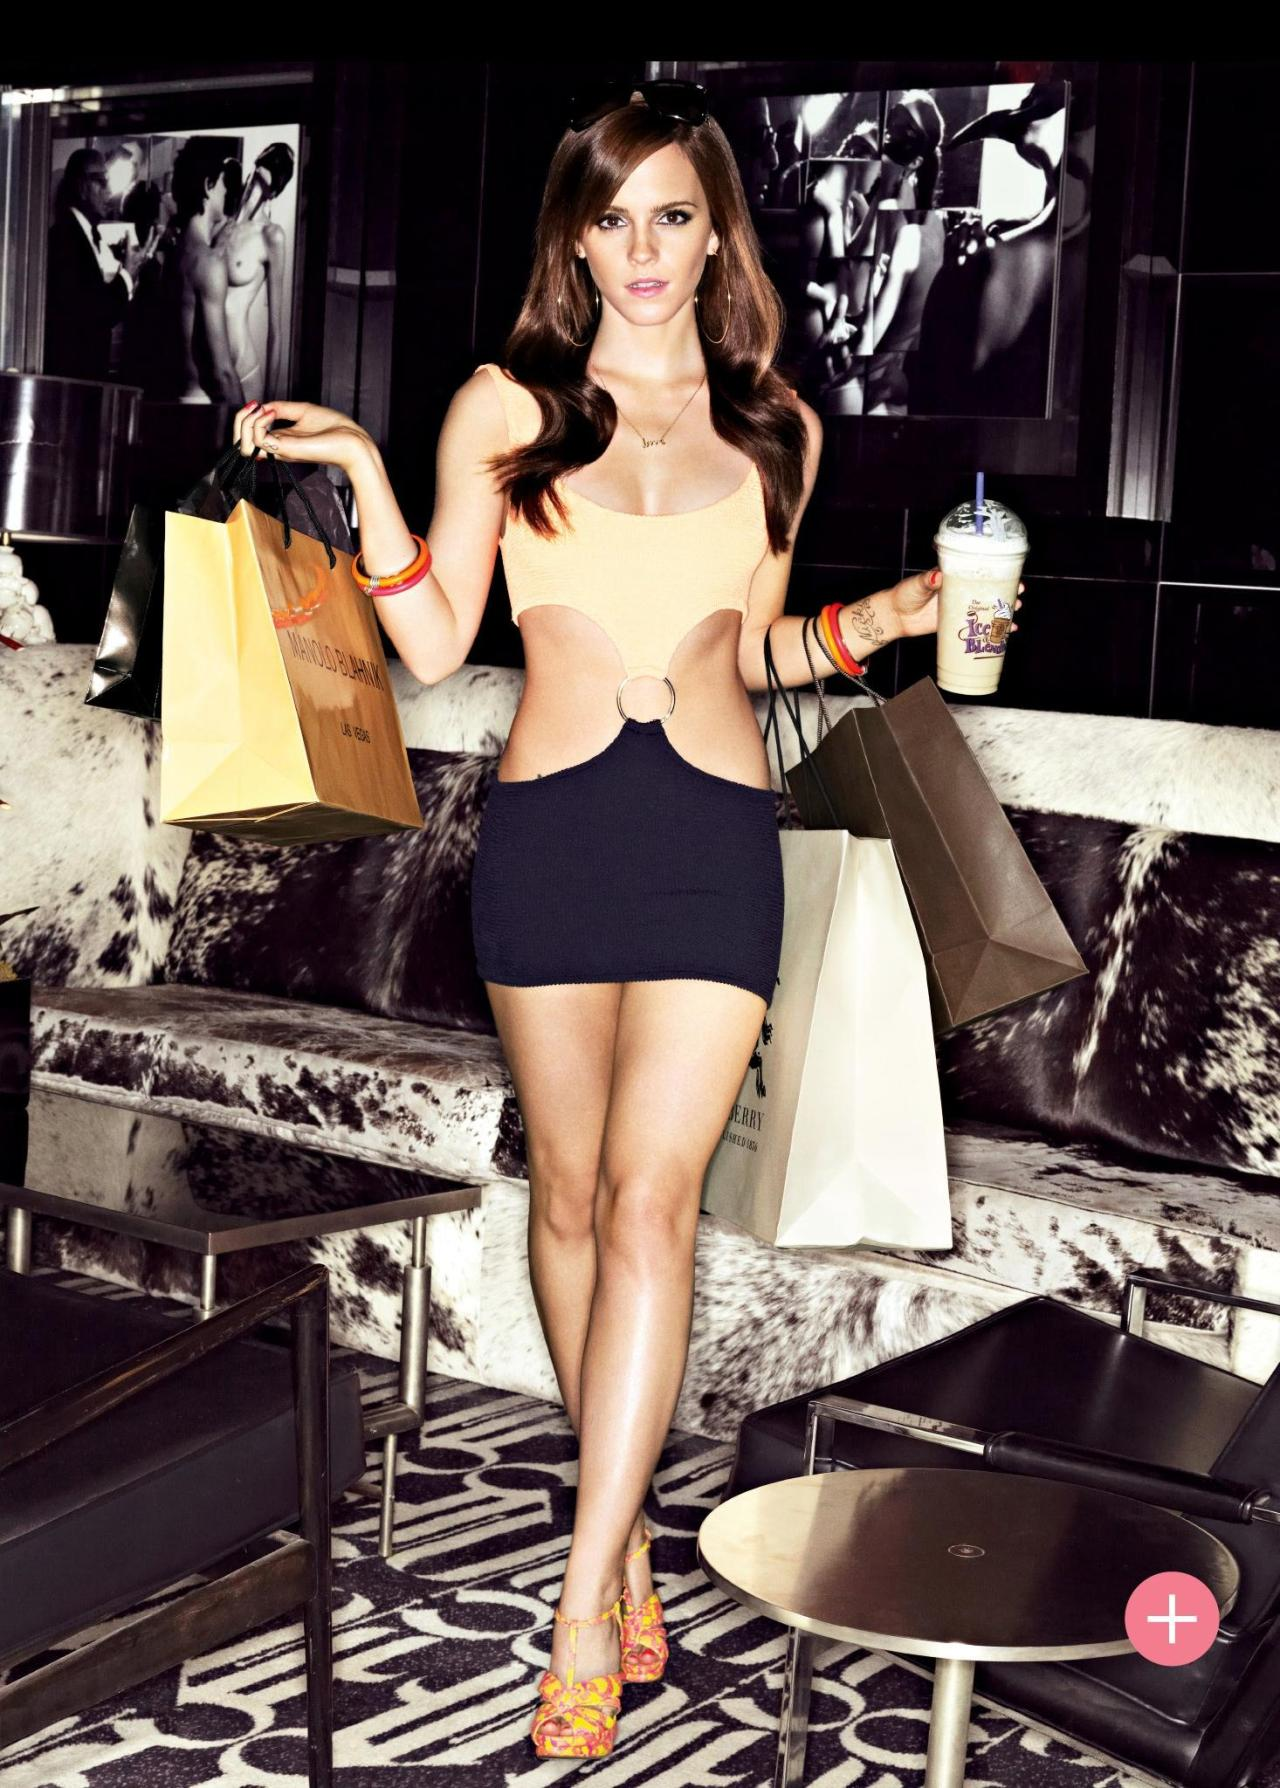 suicideblonde:  Emma Watson as Nikki in The Bling Ring, photographed by Mark Seliger for British GQ, May 2013